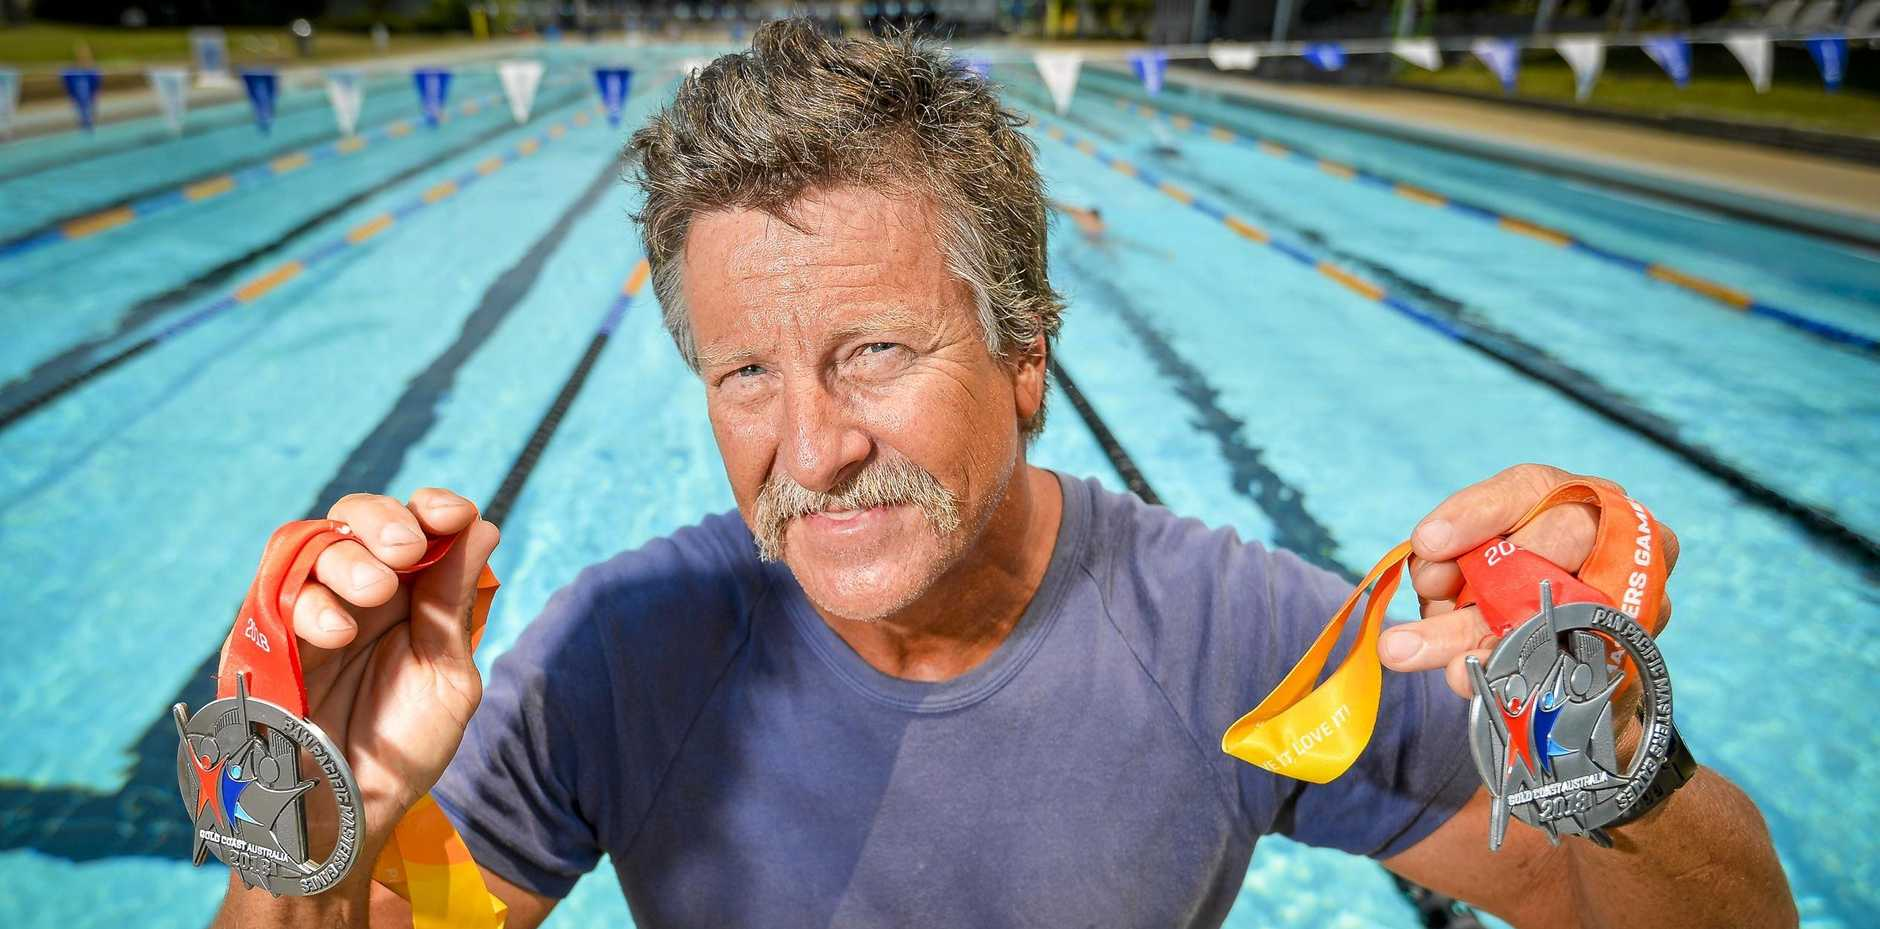 FIGHTING FIT: Murray Chapman, 55, said he was met with some challenges on the Gold Coast. But the training program he did under coach Tom Fronek, put him in good stead.